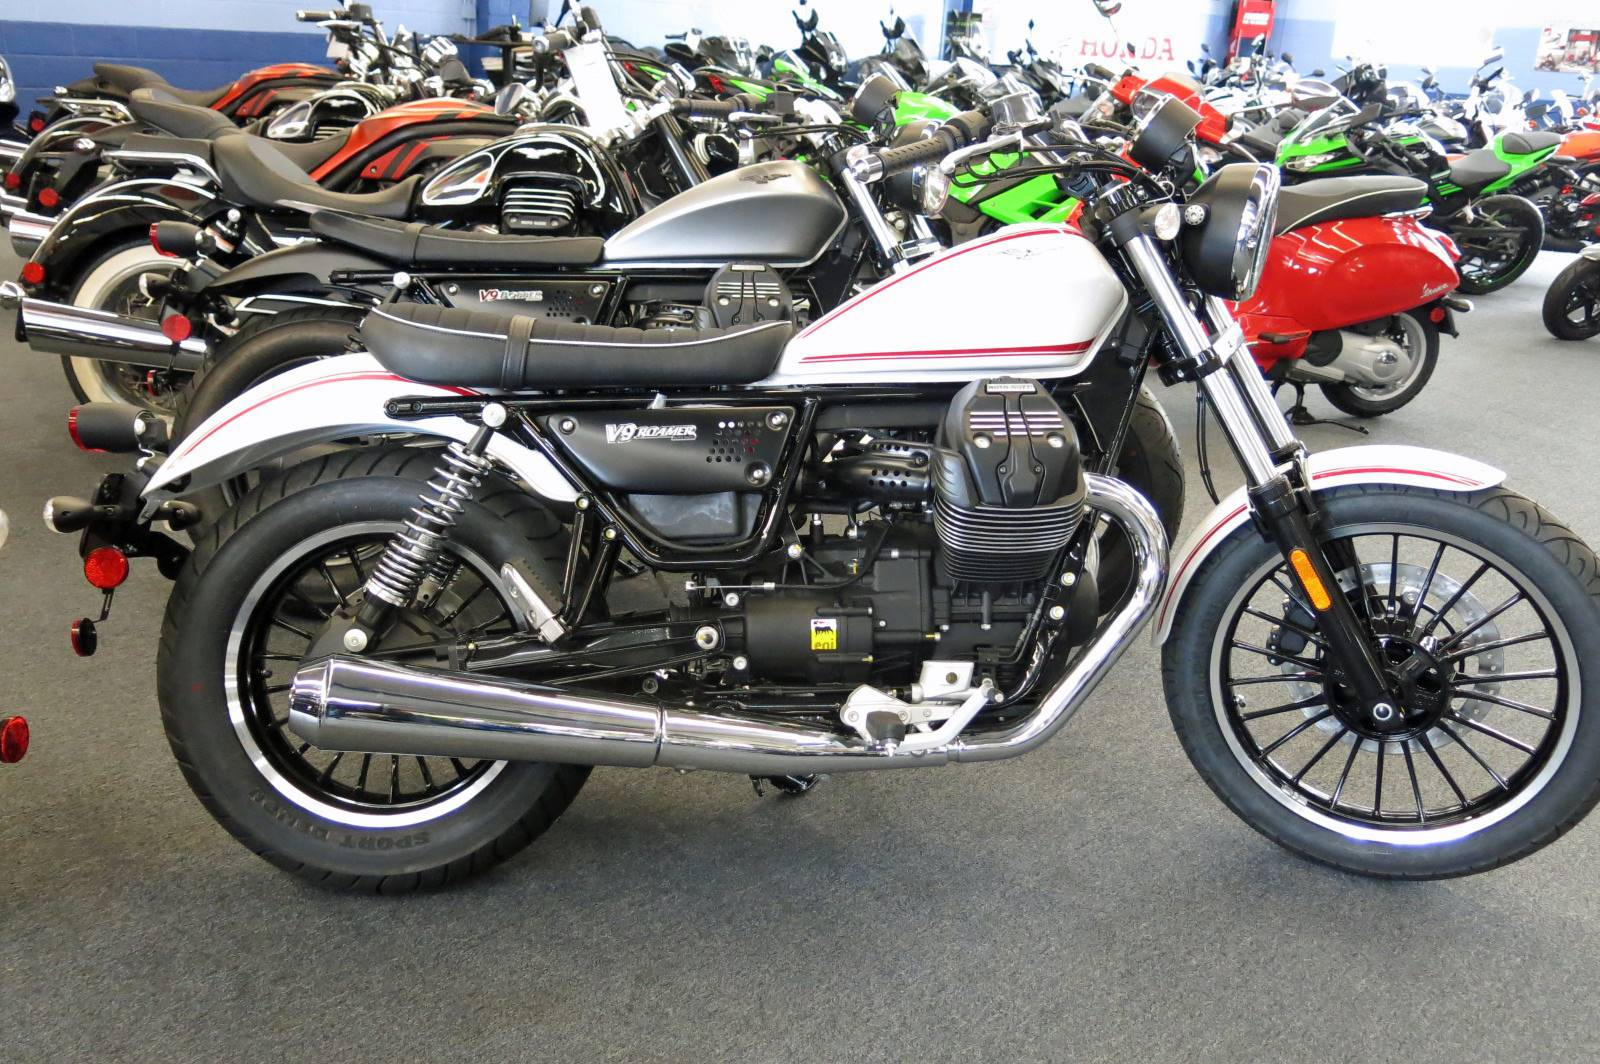 PCH Powersports Marina del Rey MOTO GUZZI - Photo 2